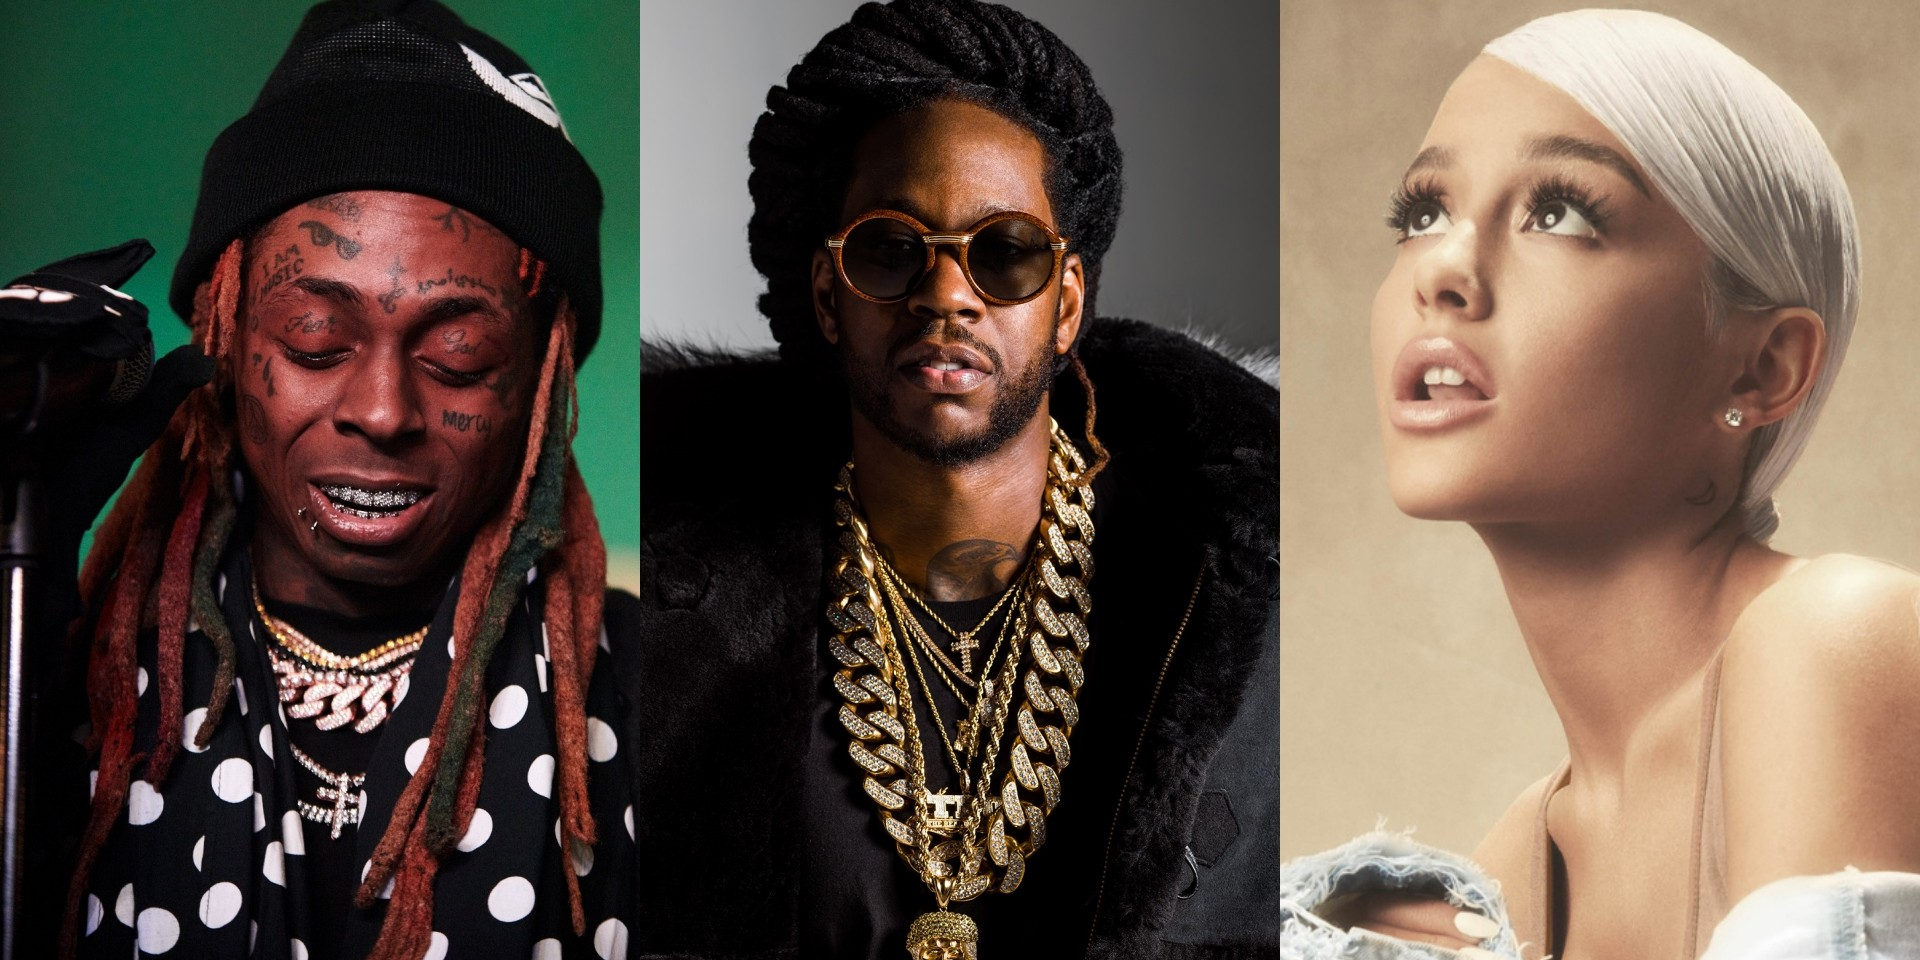 2 Chainz shares tracklist for new album, guests include Kendrick Lamar, Ariana Grande, Lil Wayne and more